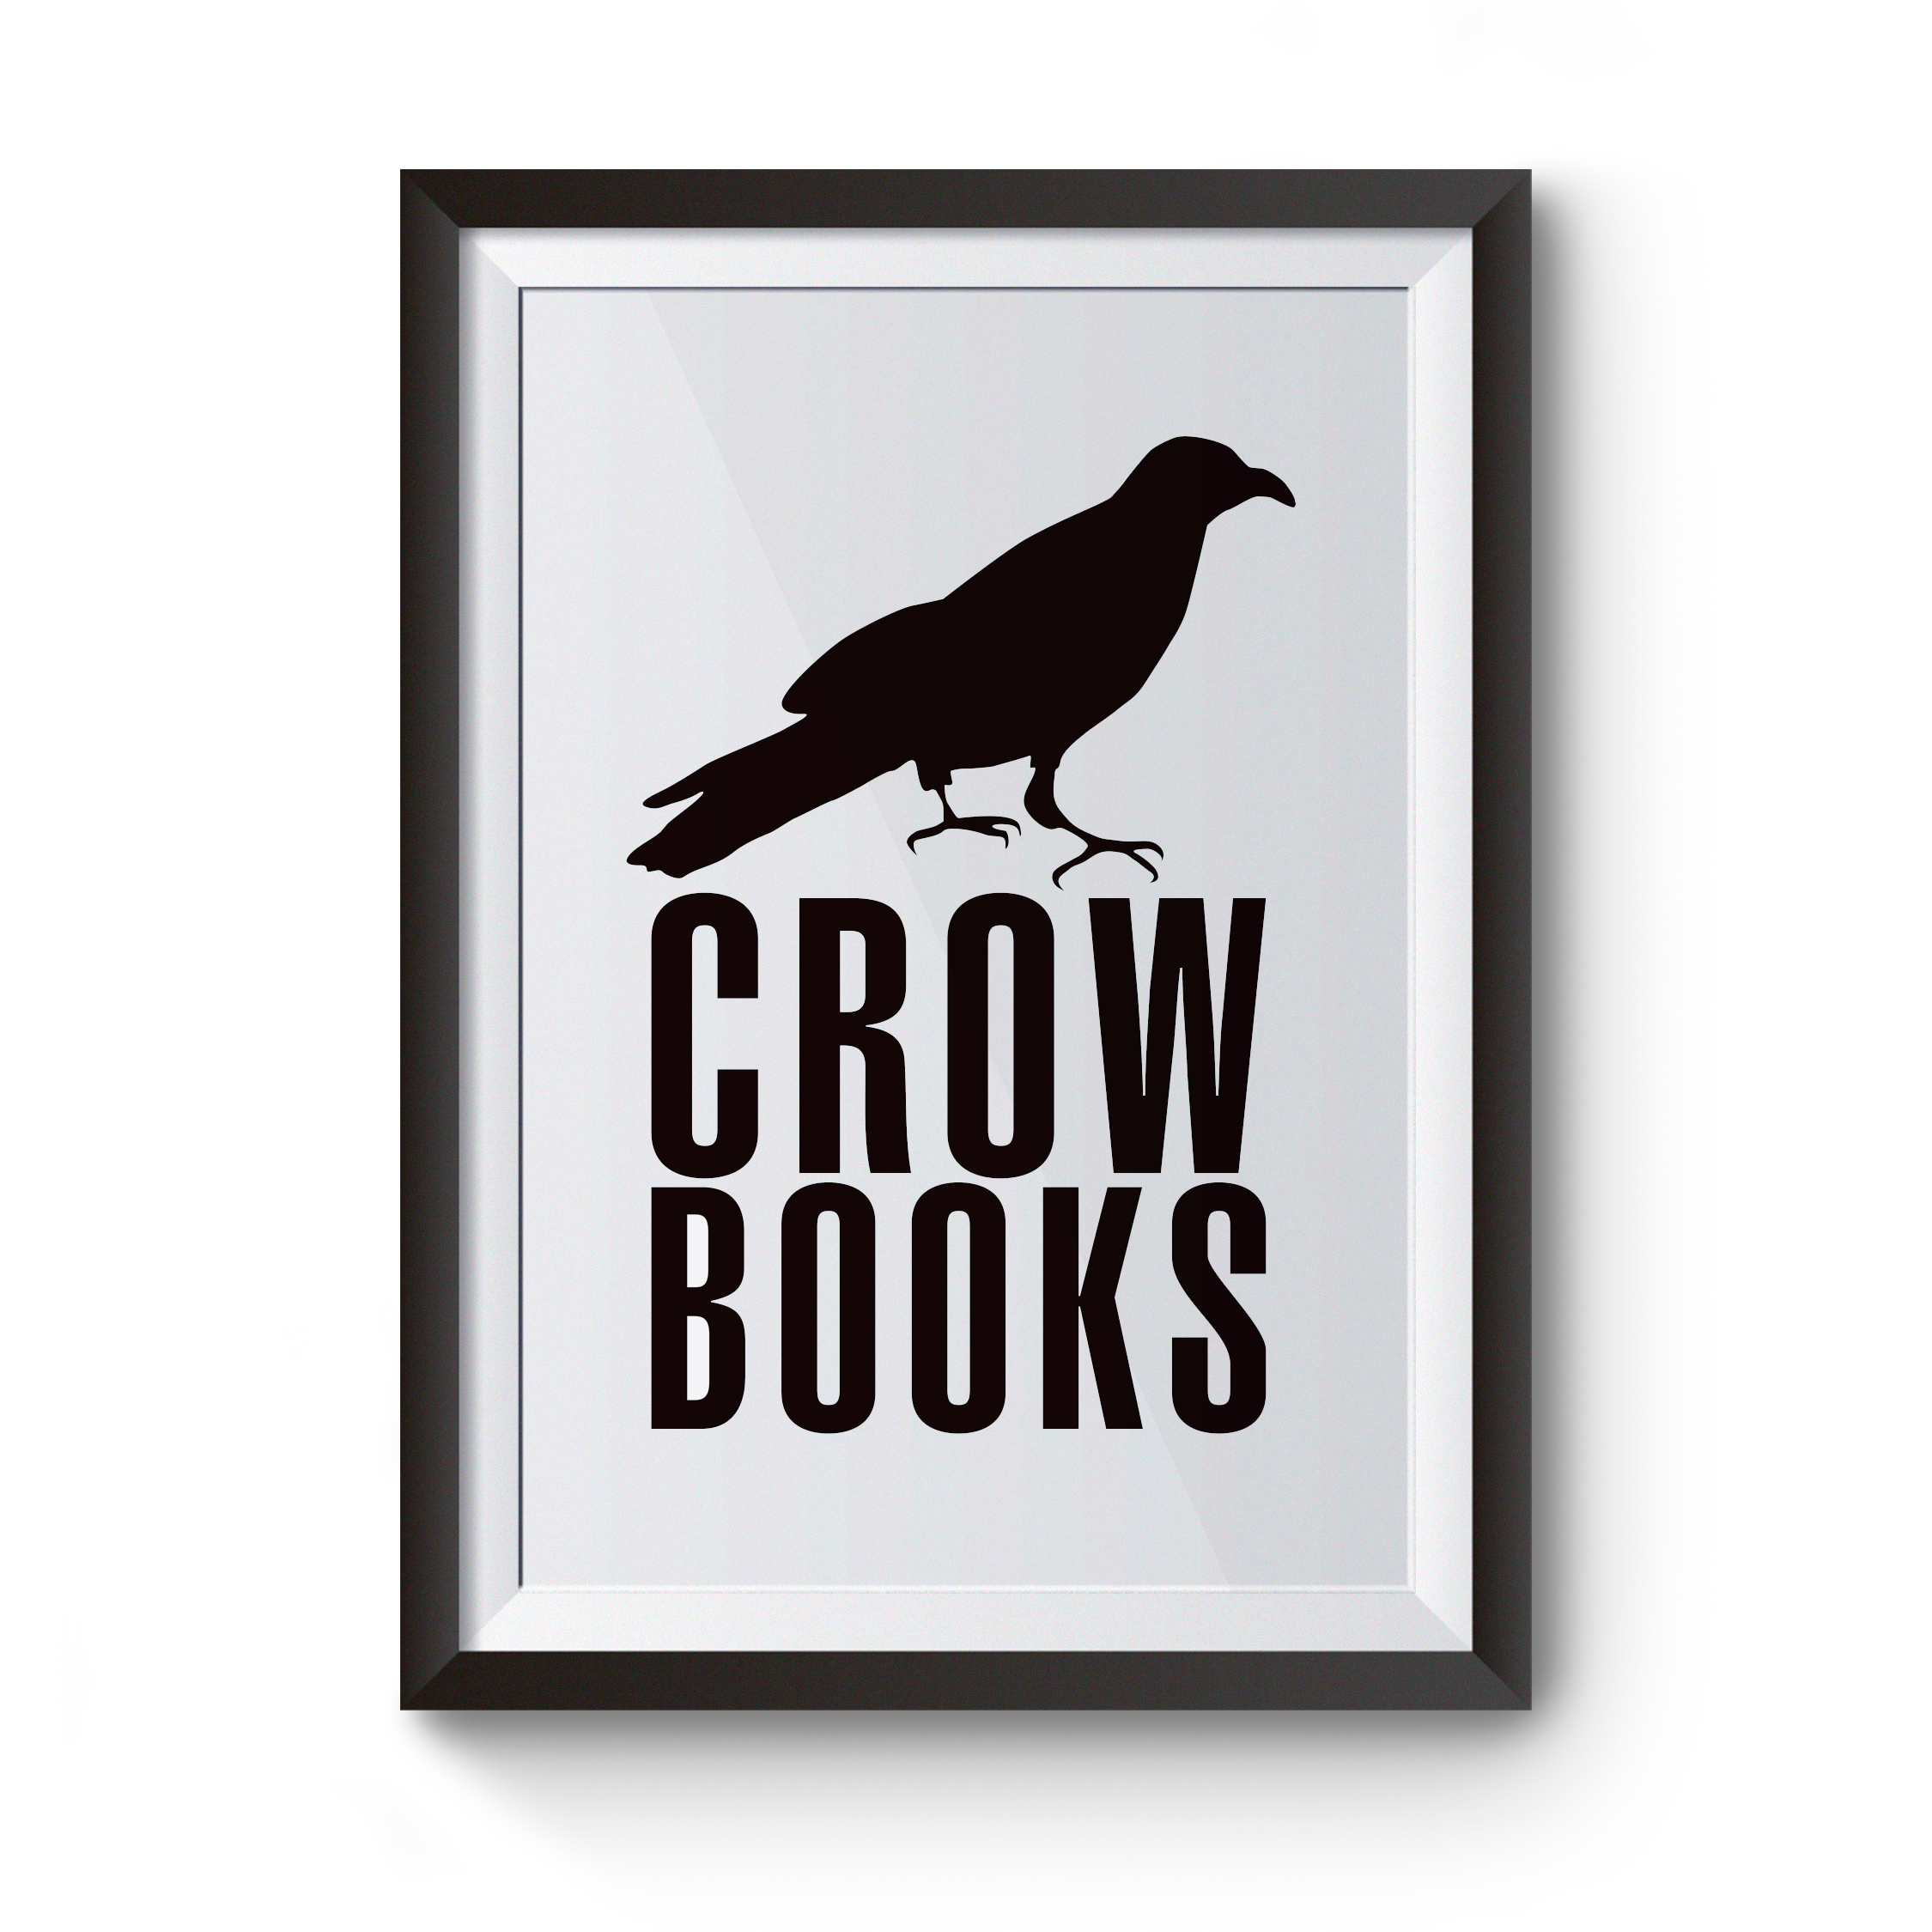 crowbooks_logo.jpg